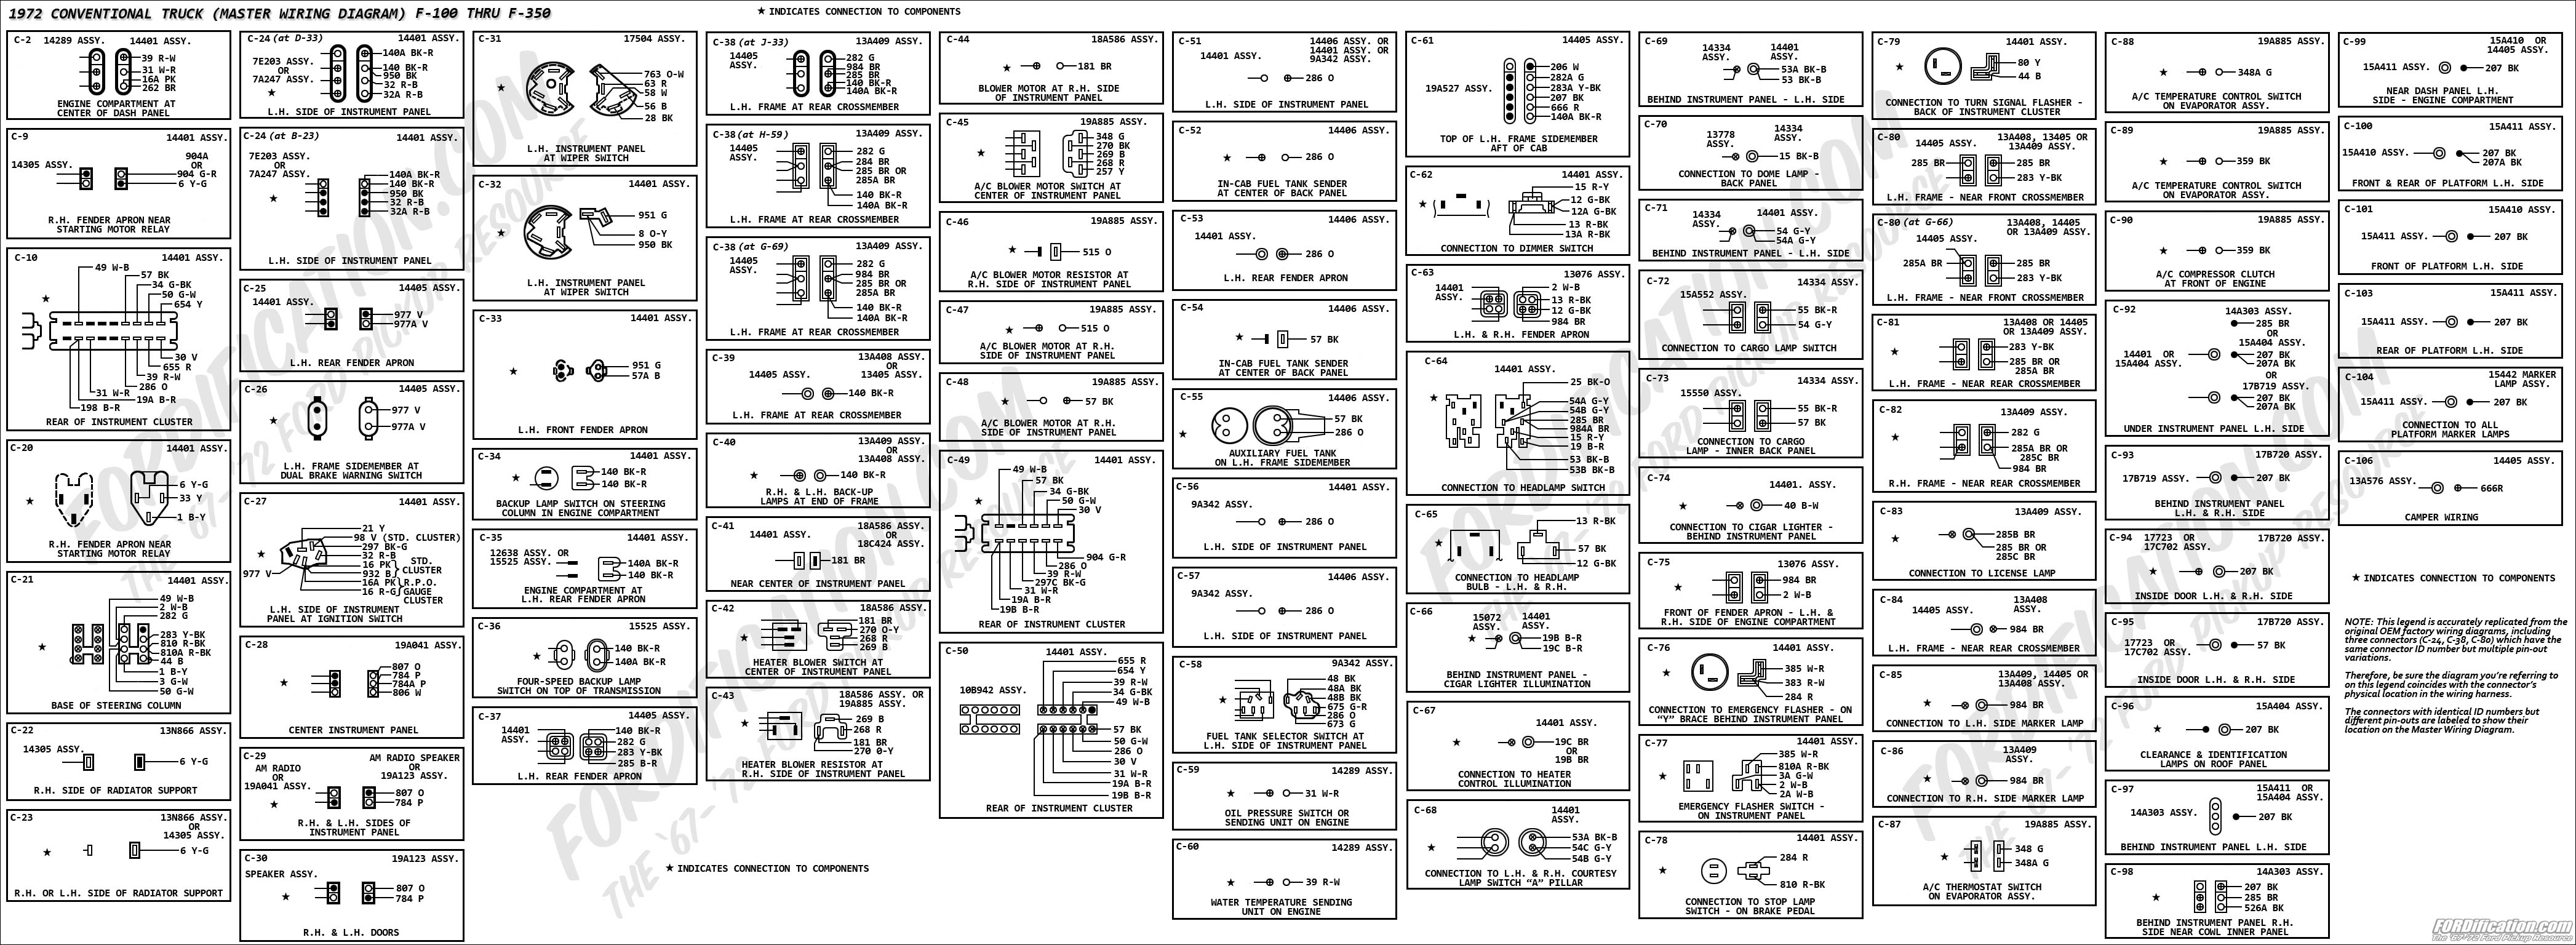 three phase wiring diagrams 2001 dodge ram trailer plug diagram 1972 ford truck - fordification.com